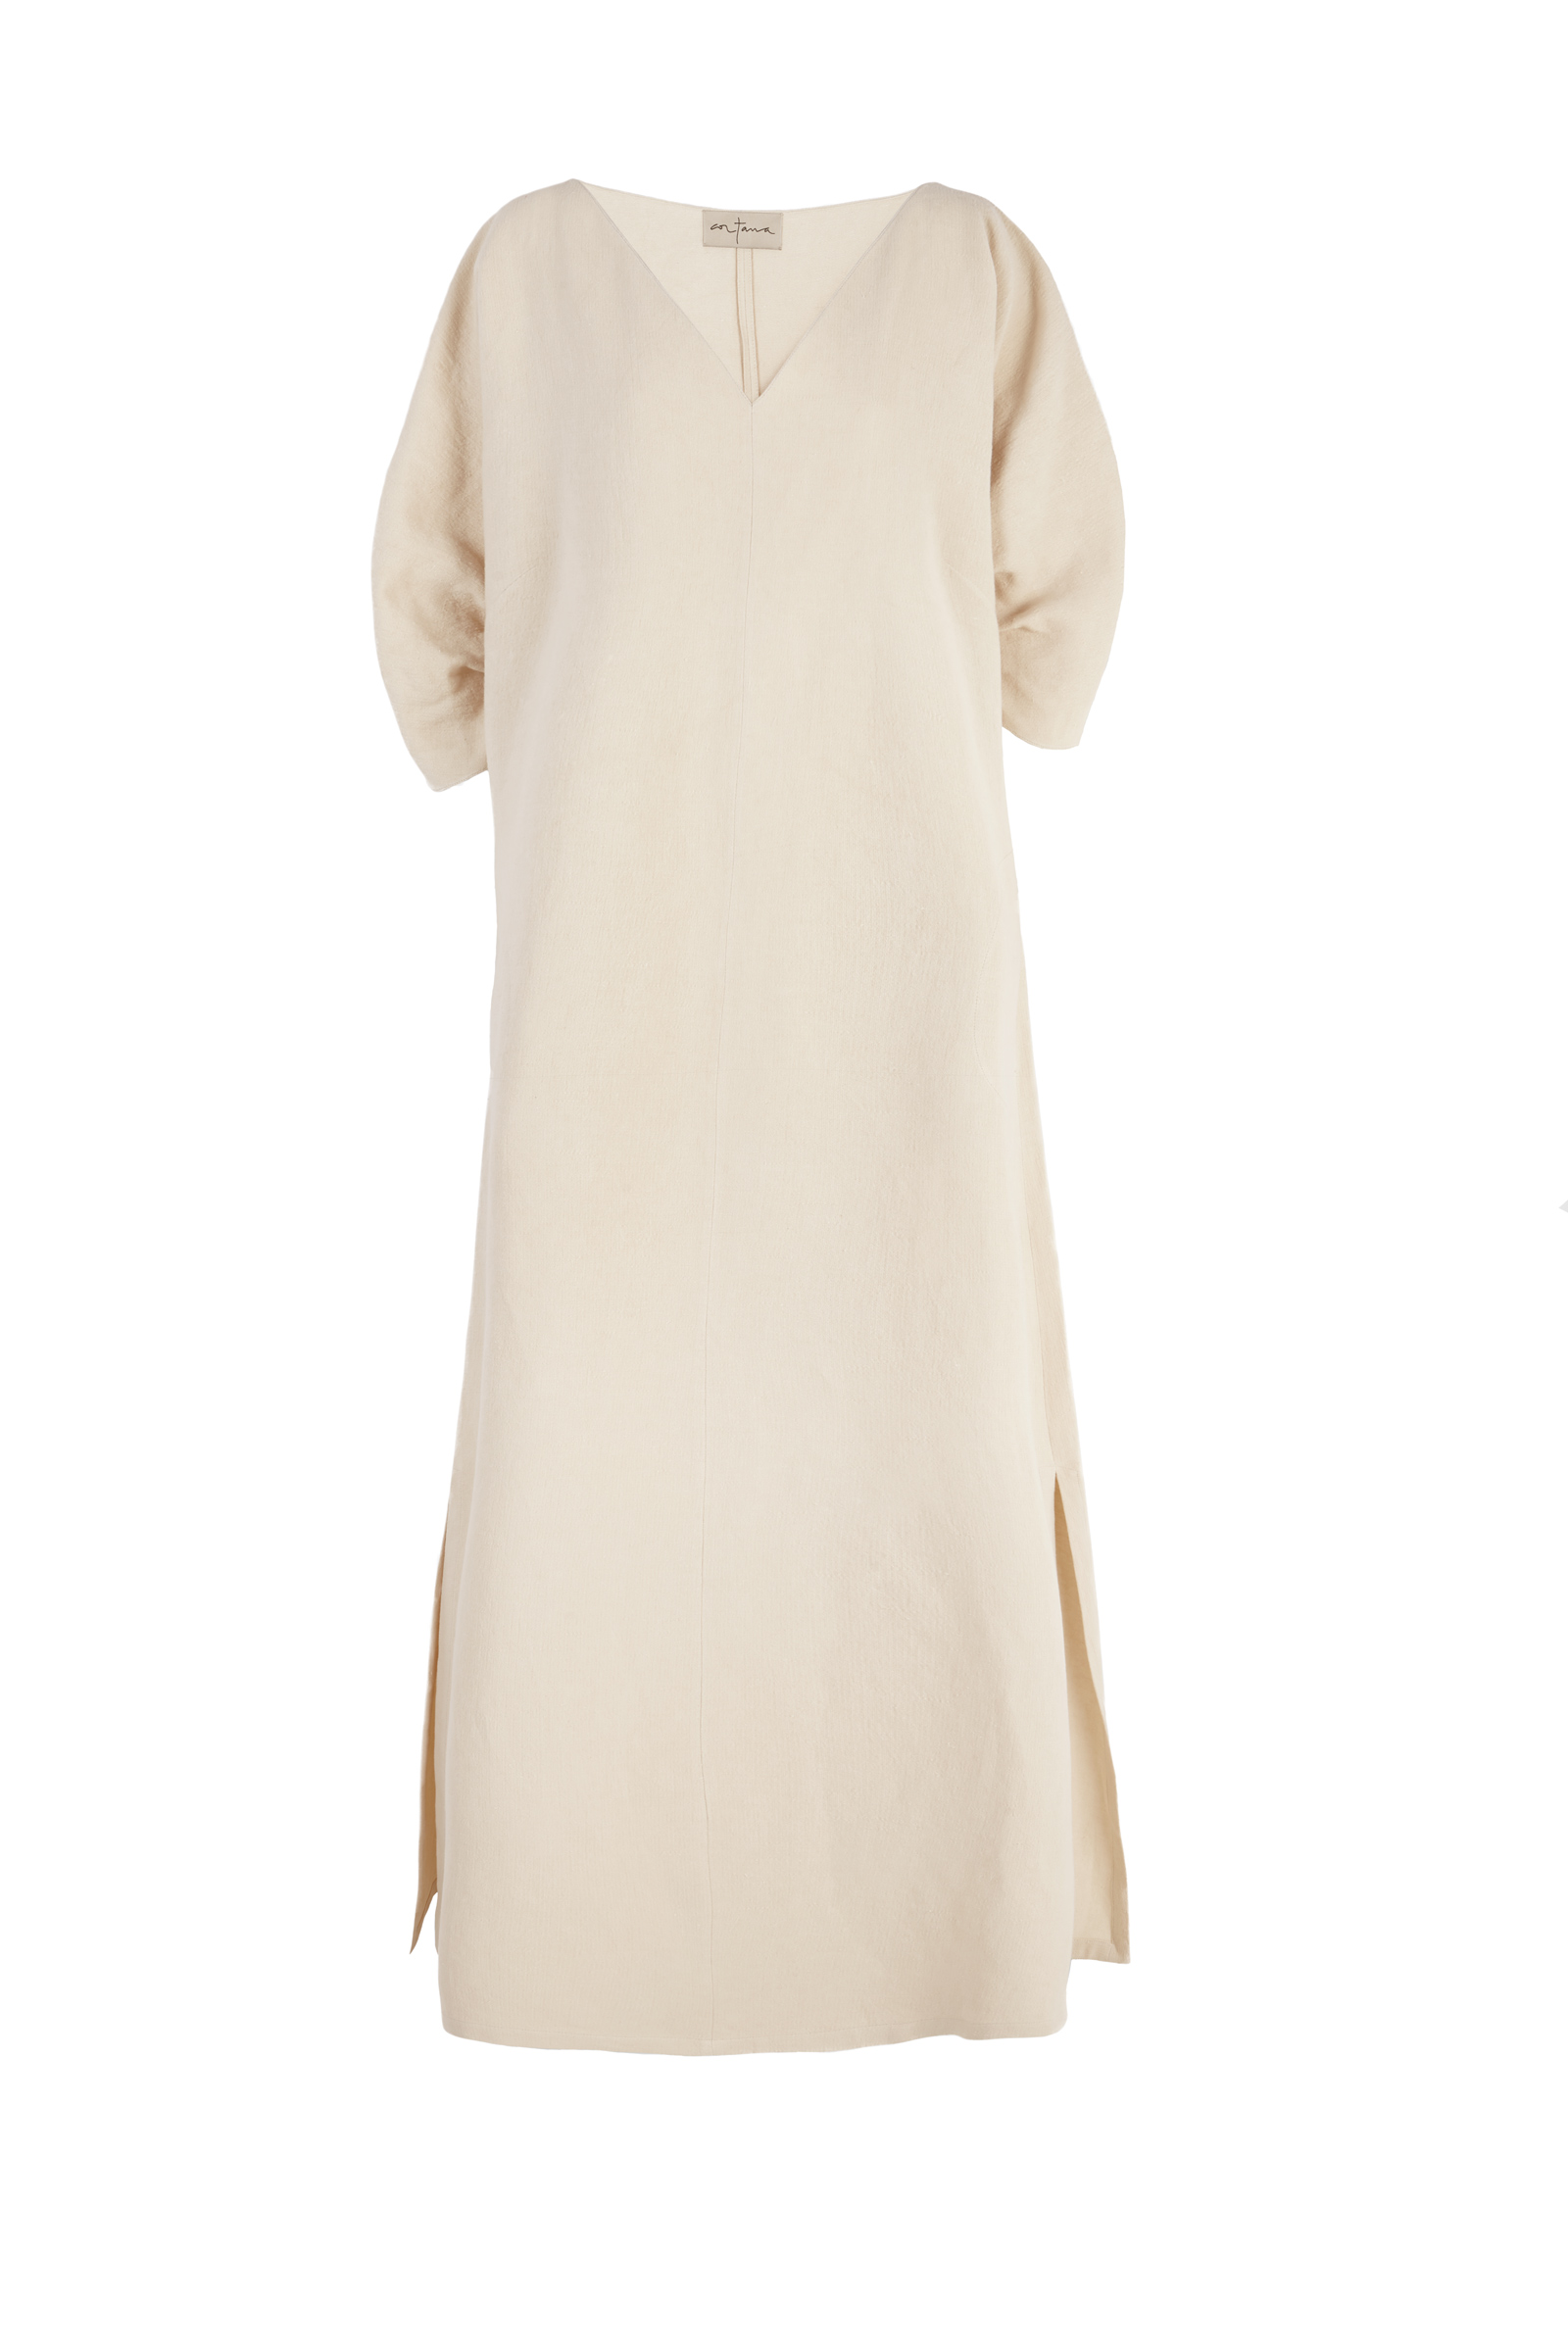 CENIT BEIGE TUNIC DRESS - Cortana Moda